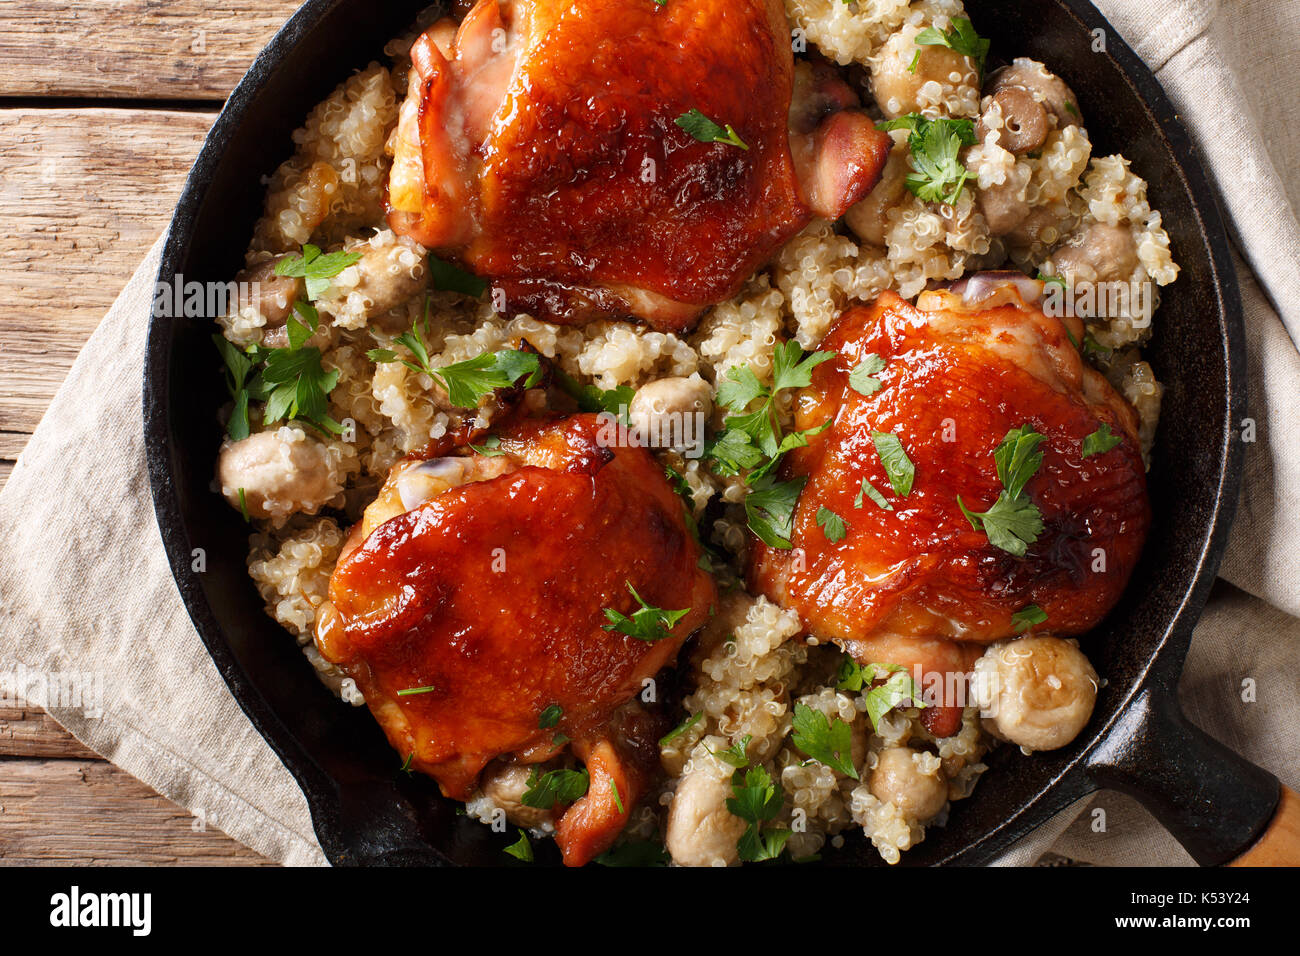 One pot: fried chicken thighs with quinoa and mushrooms close-up on the table. top view from above horizontal Stock Photo